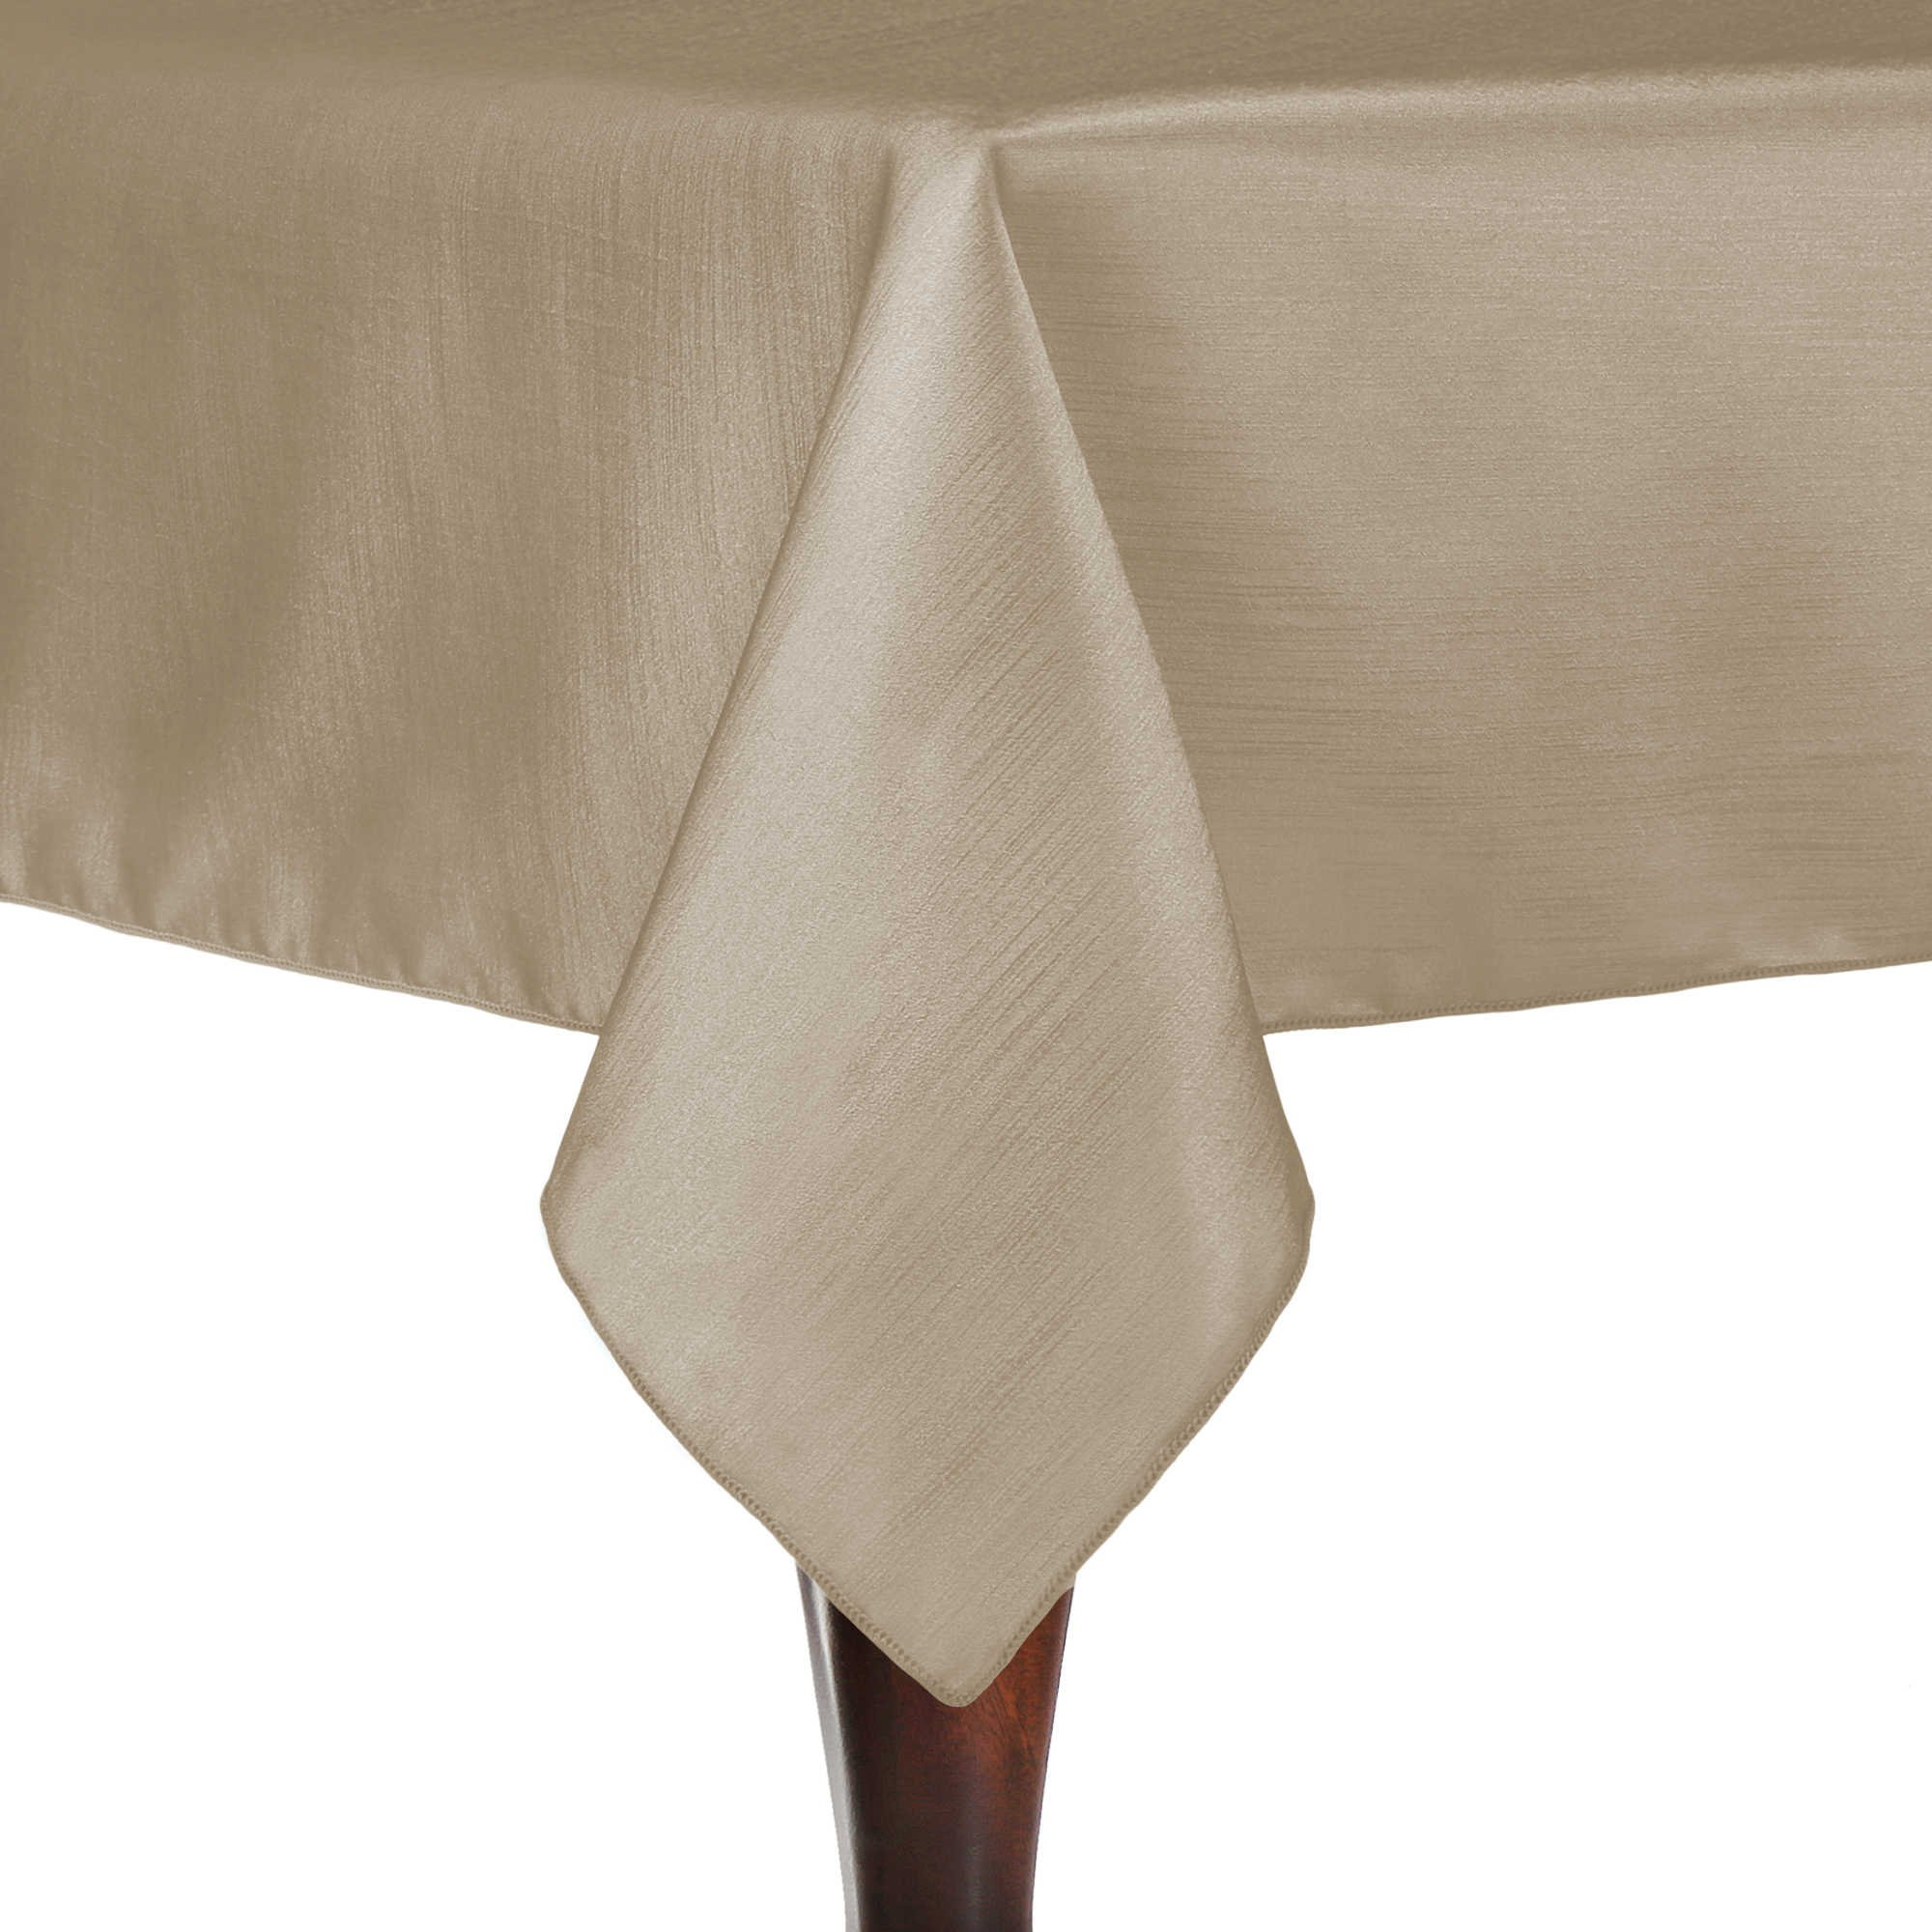 Ultimate Textile (5 Pack) Reversible Shantung Satin - Majestic 60 x 120-Inch Rectangular Tablecloth - for Weddings, Home Parties and Special Event use, Tan Beige